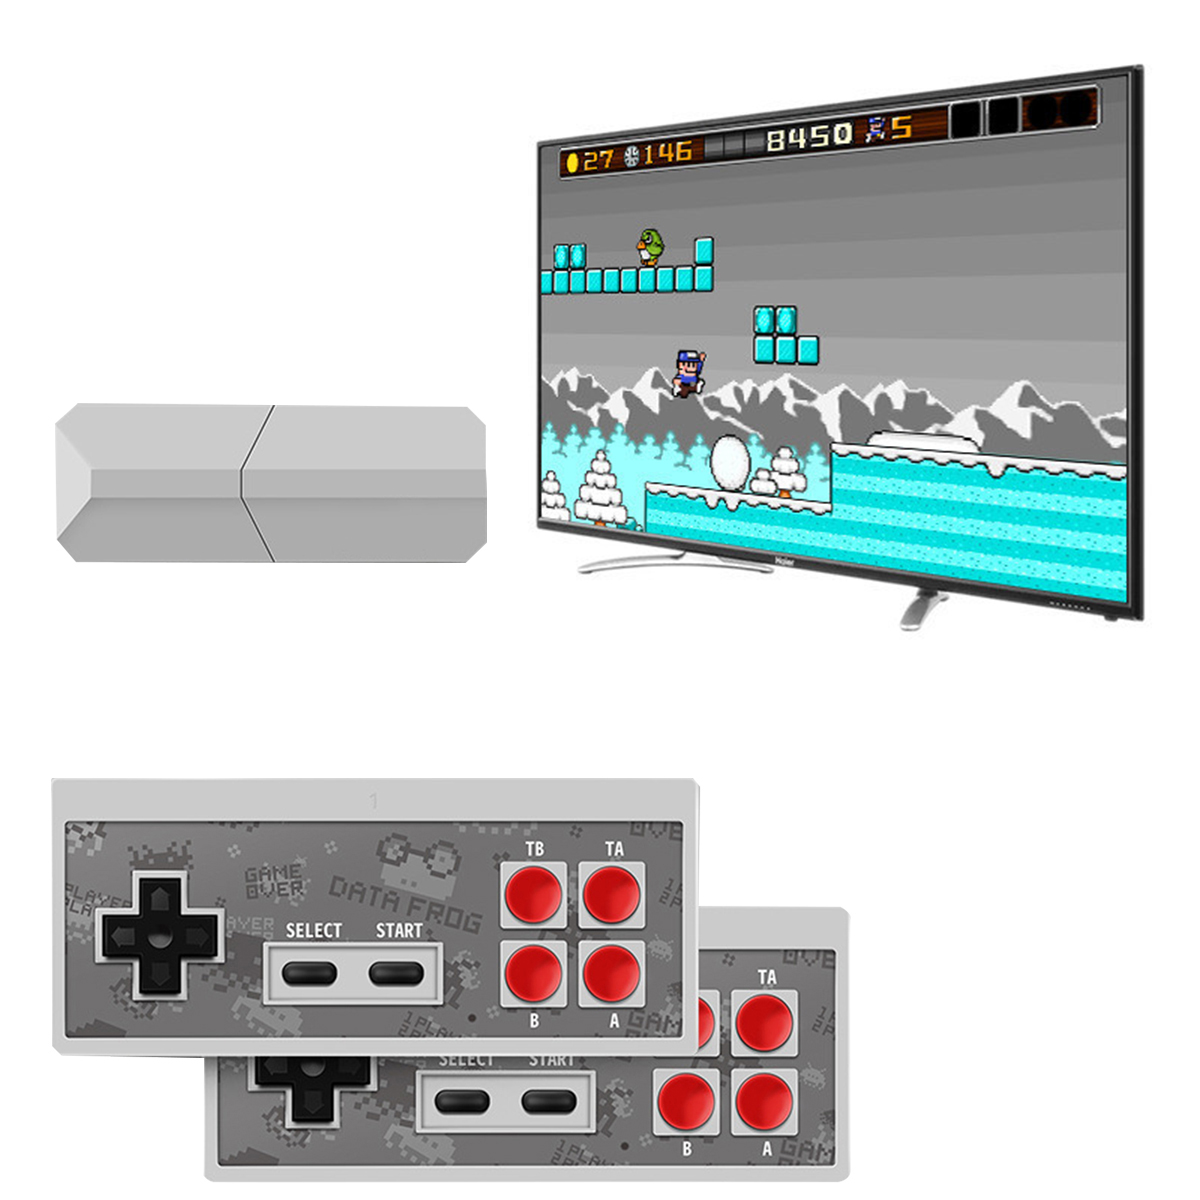 Data USB Wireless Handheld TV Video Game Console Build In 600 Classic Game 8 Bit Mini Video Console Support AV/HDMI Output